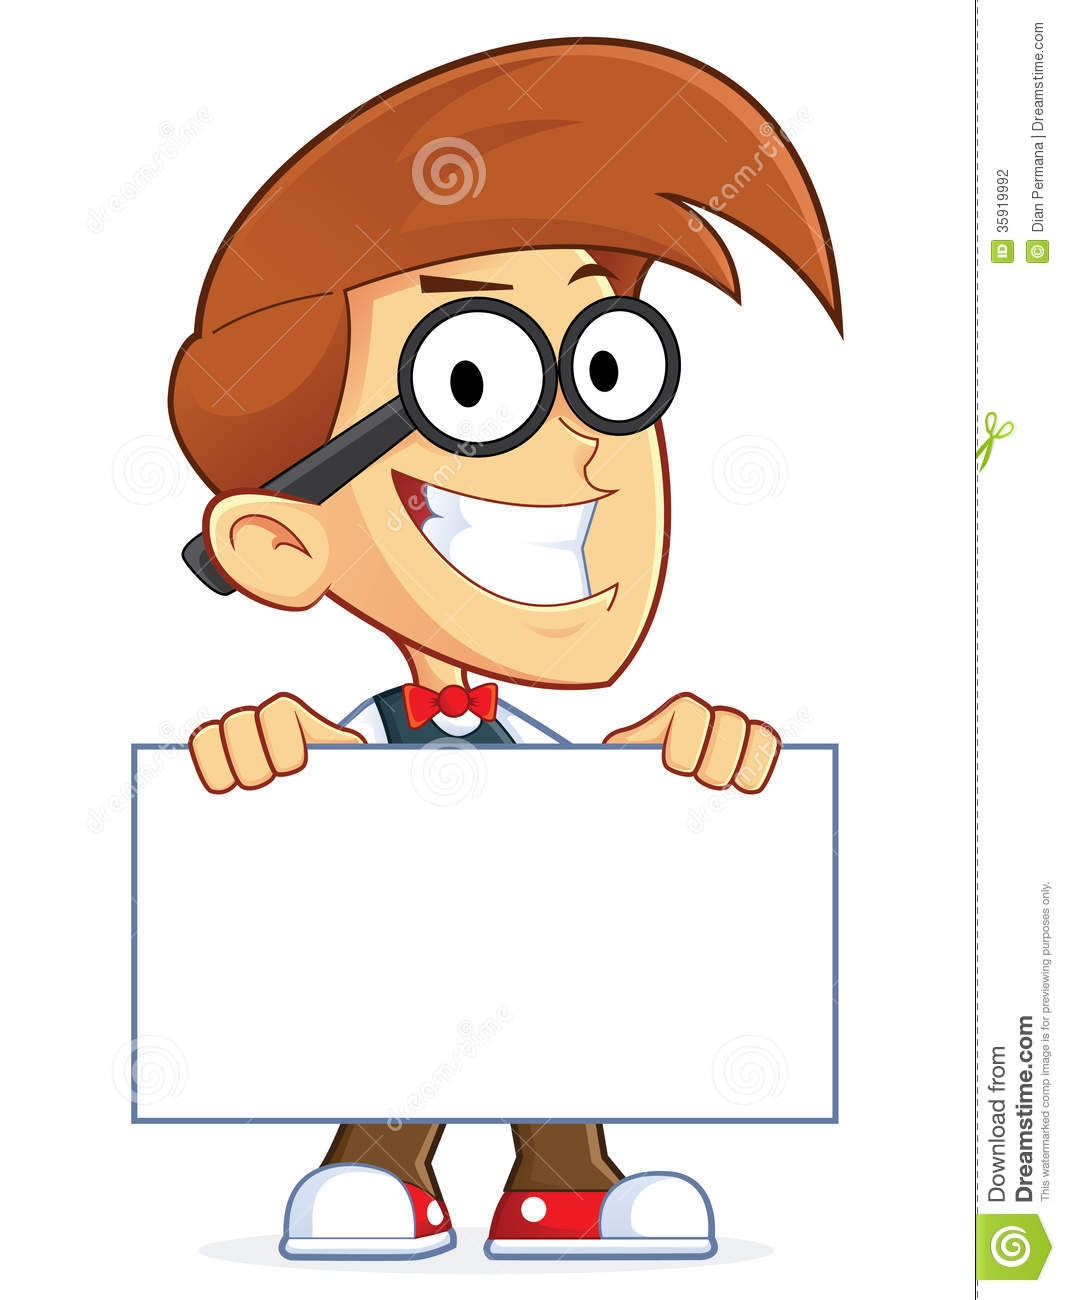 Geek clipart cartoon person Daffy and characters duck tunes